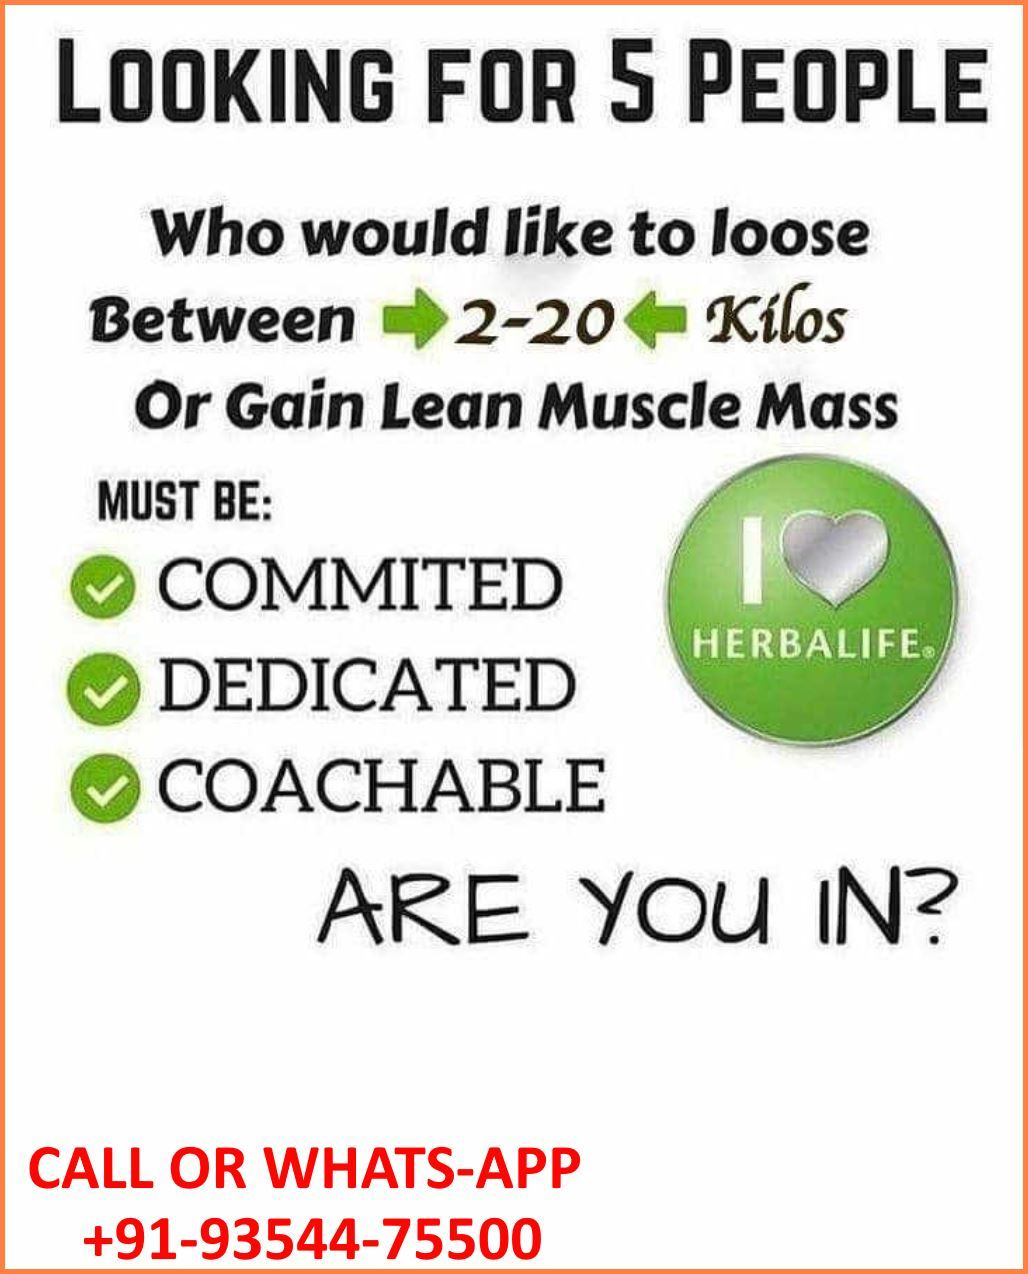 work from home jobs in pune for ladies in 2020 Herbalife